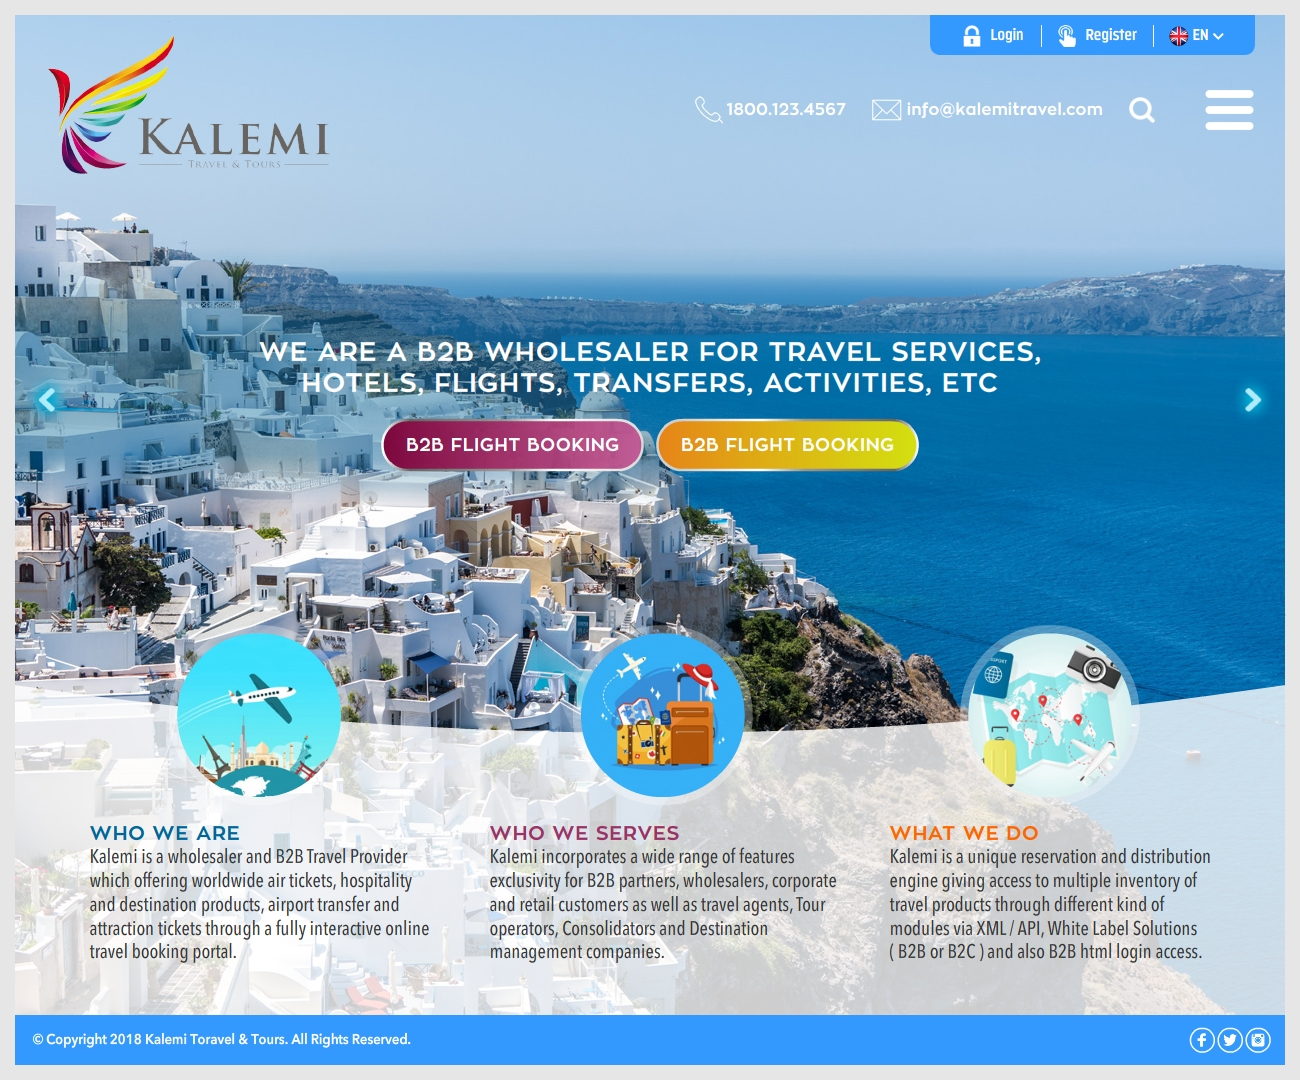 Elegant Playful Tourism Web Design For A Company By Ray Design 19858291